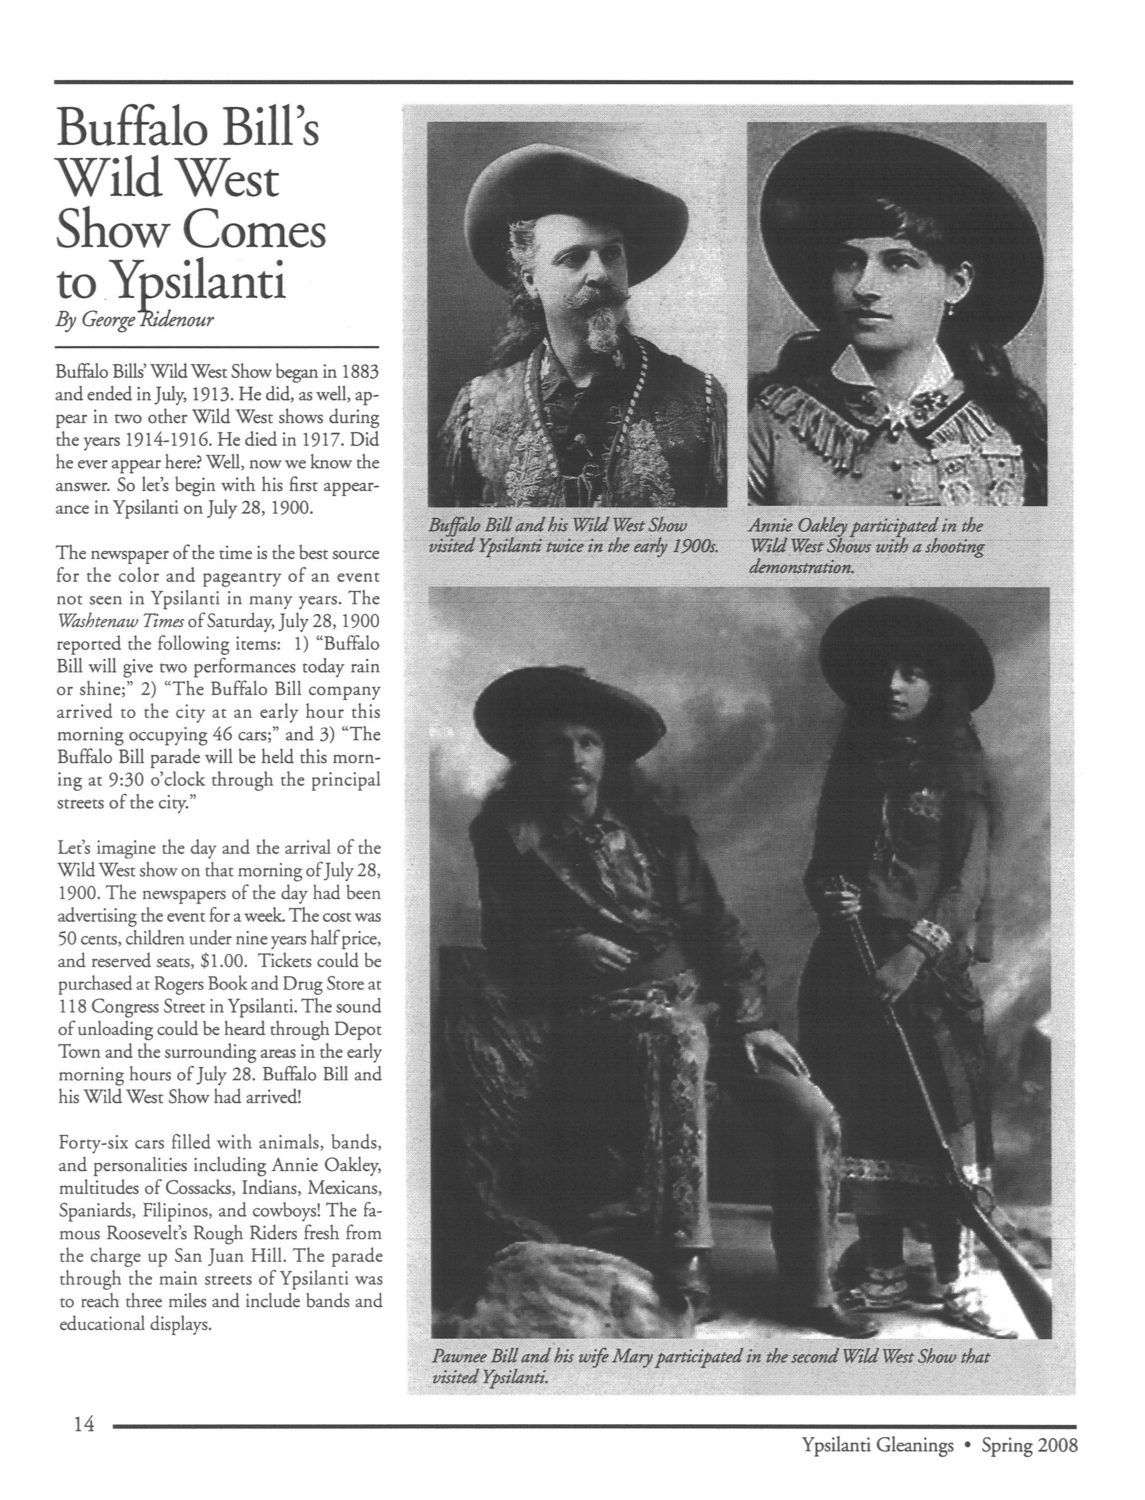 Buffalo Bill's Wild West Show Comes to Ypsilanti image